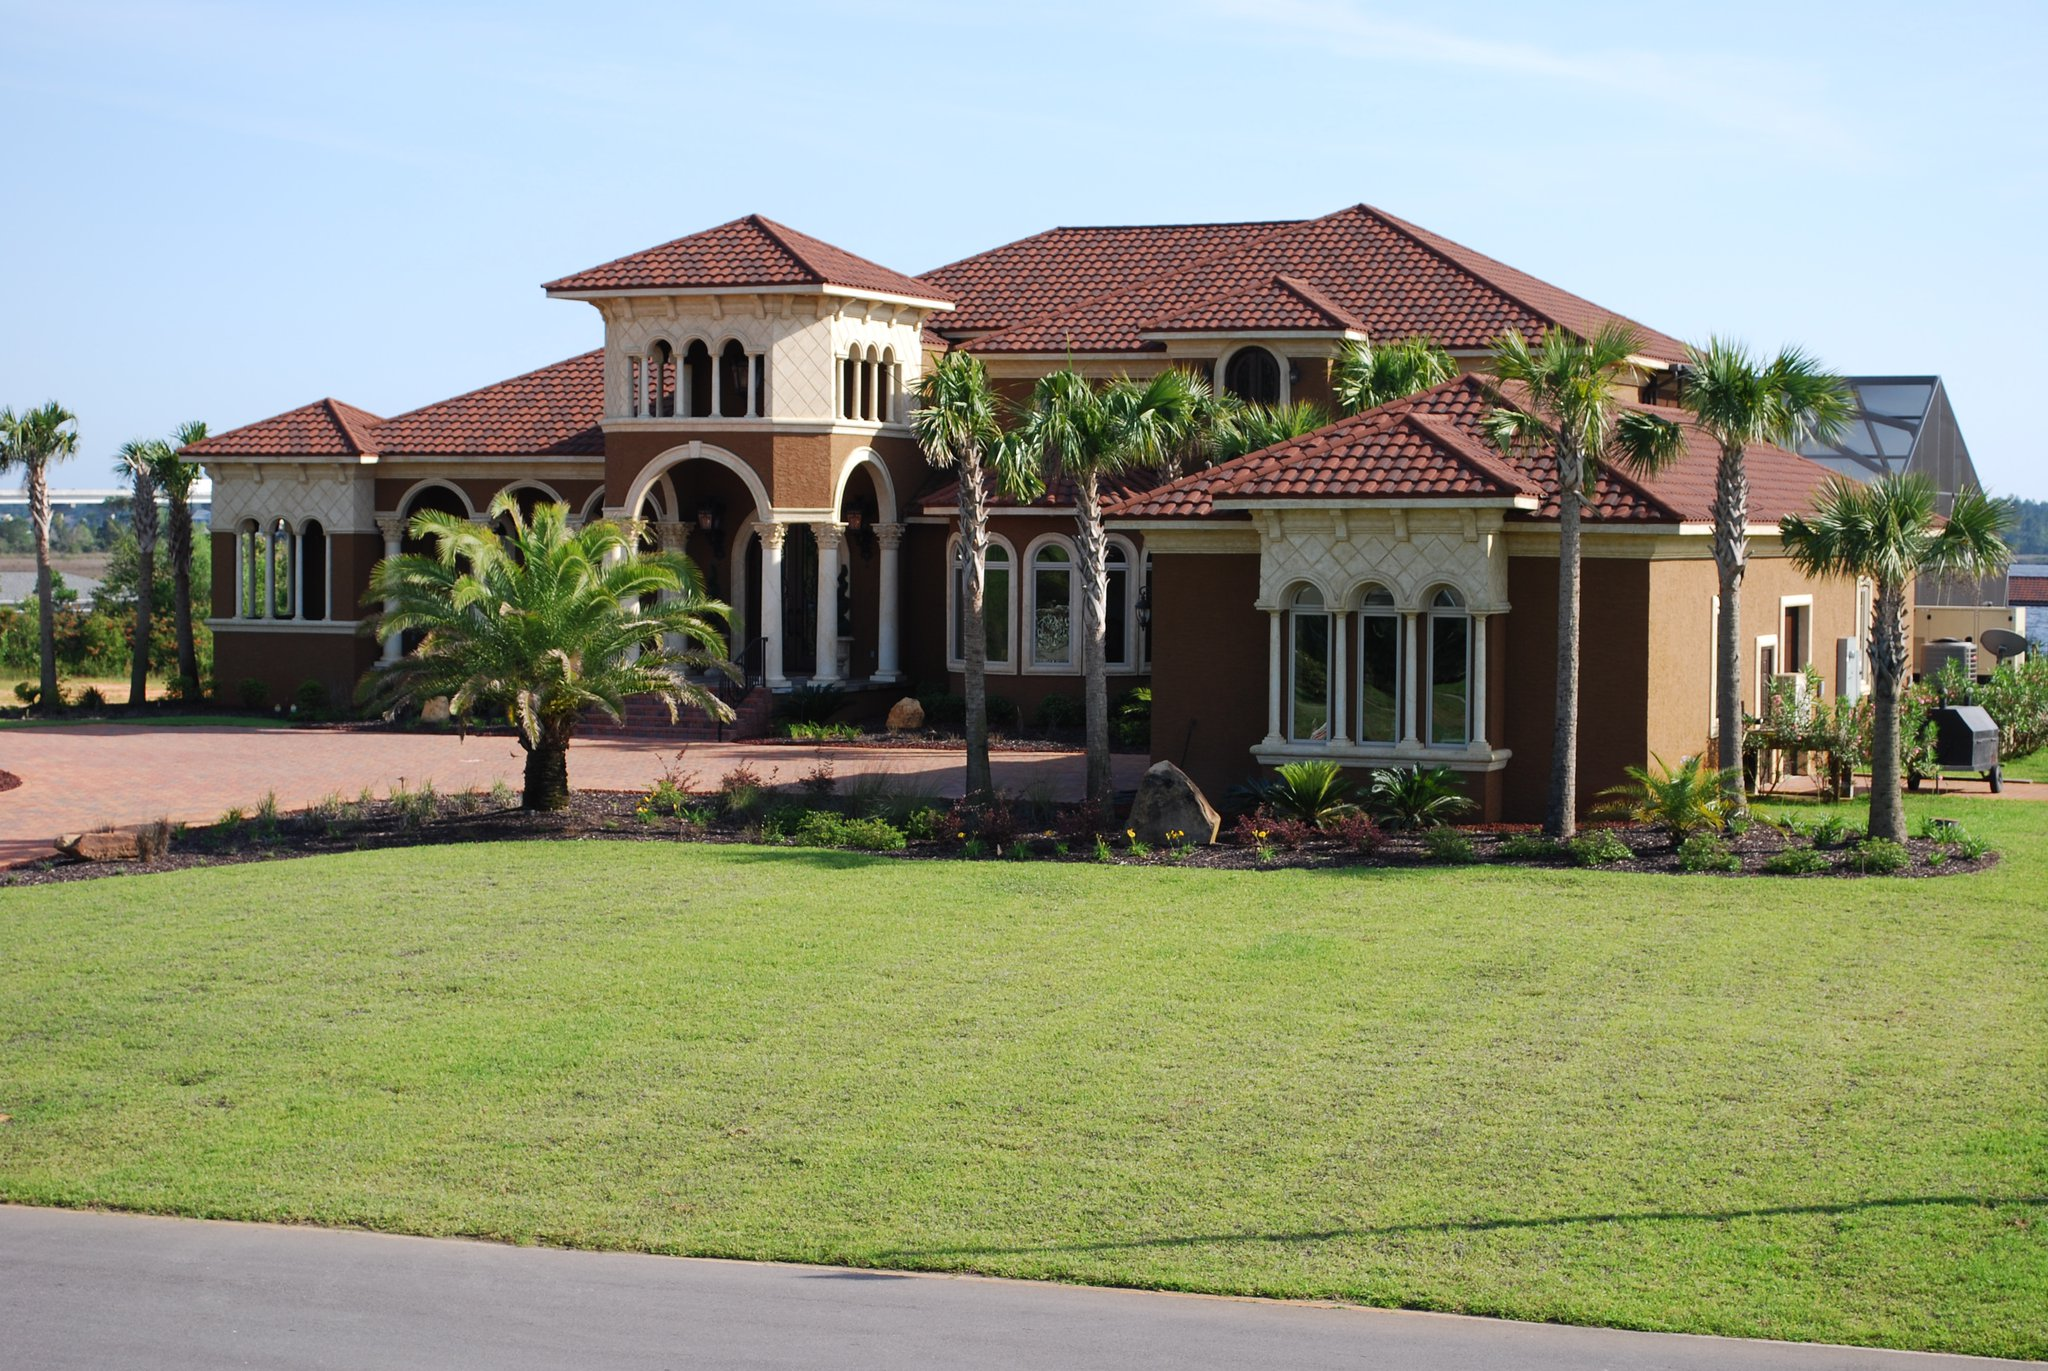 Thinking about downsizing your home? Here is some beautiful information for you